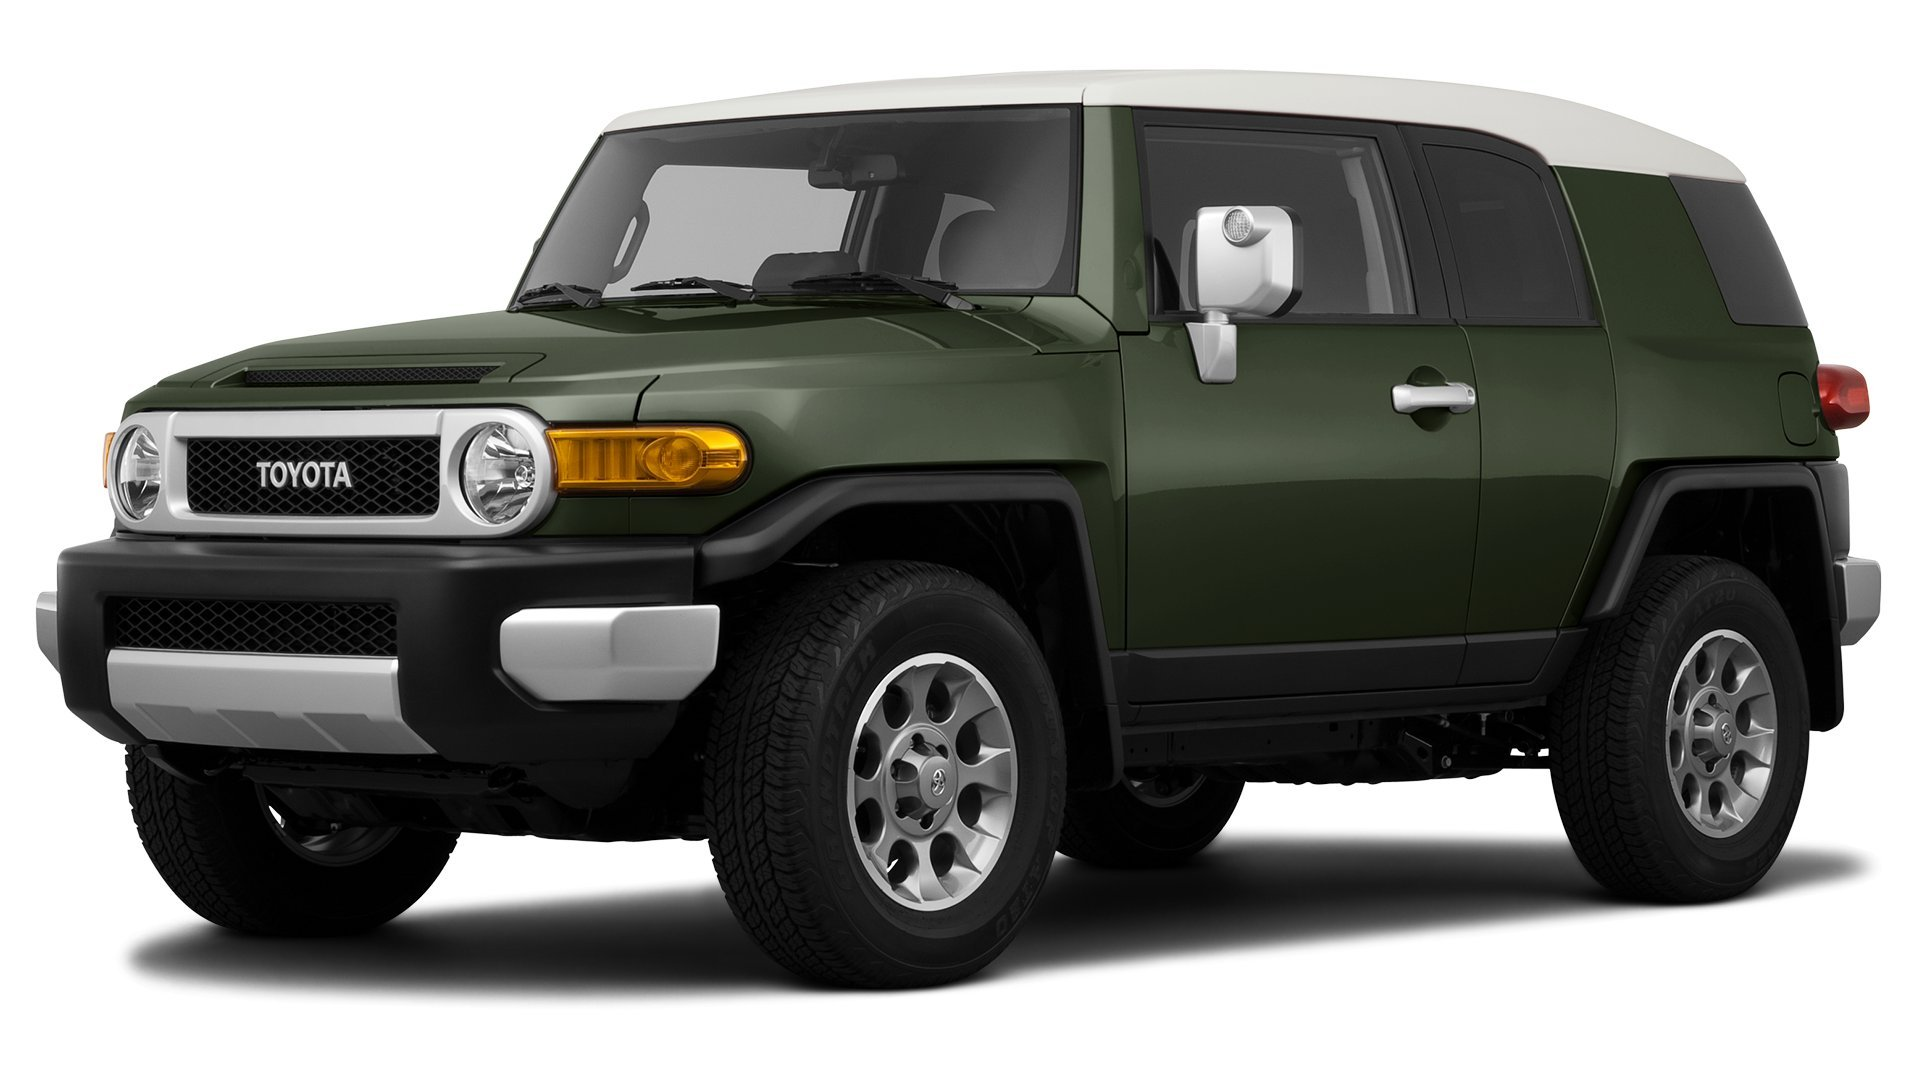 2011 Toyota FJ Cruiser, 4-Wheel Drive 4-Door Automatic Transmission (GS ...